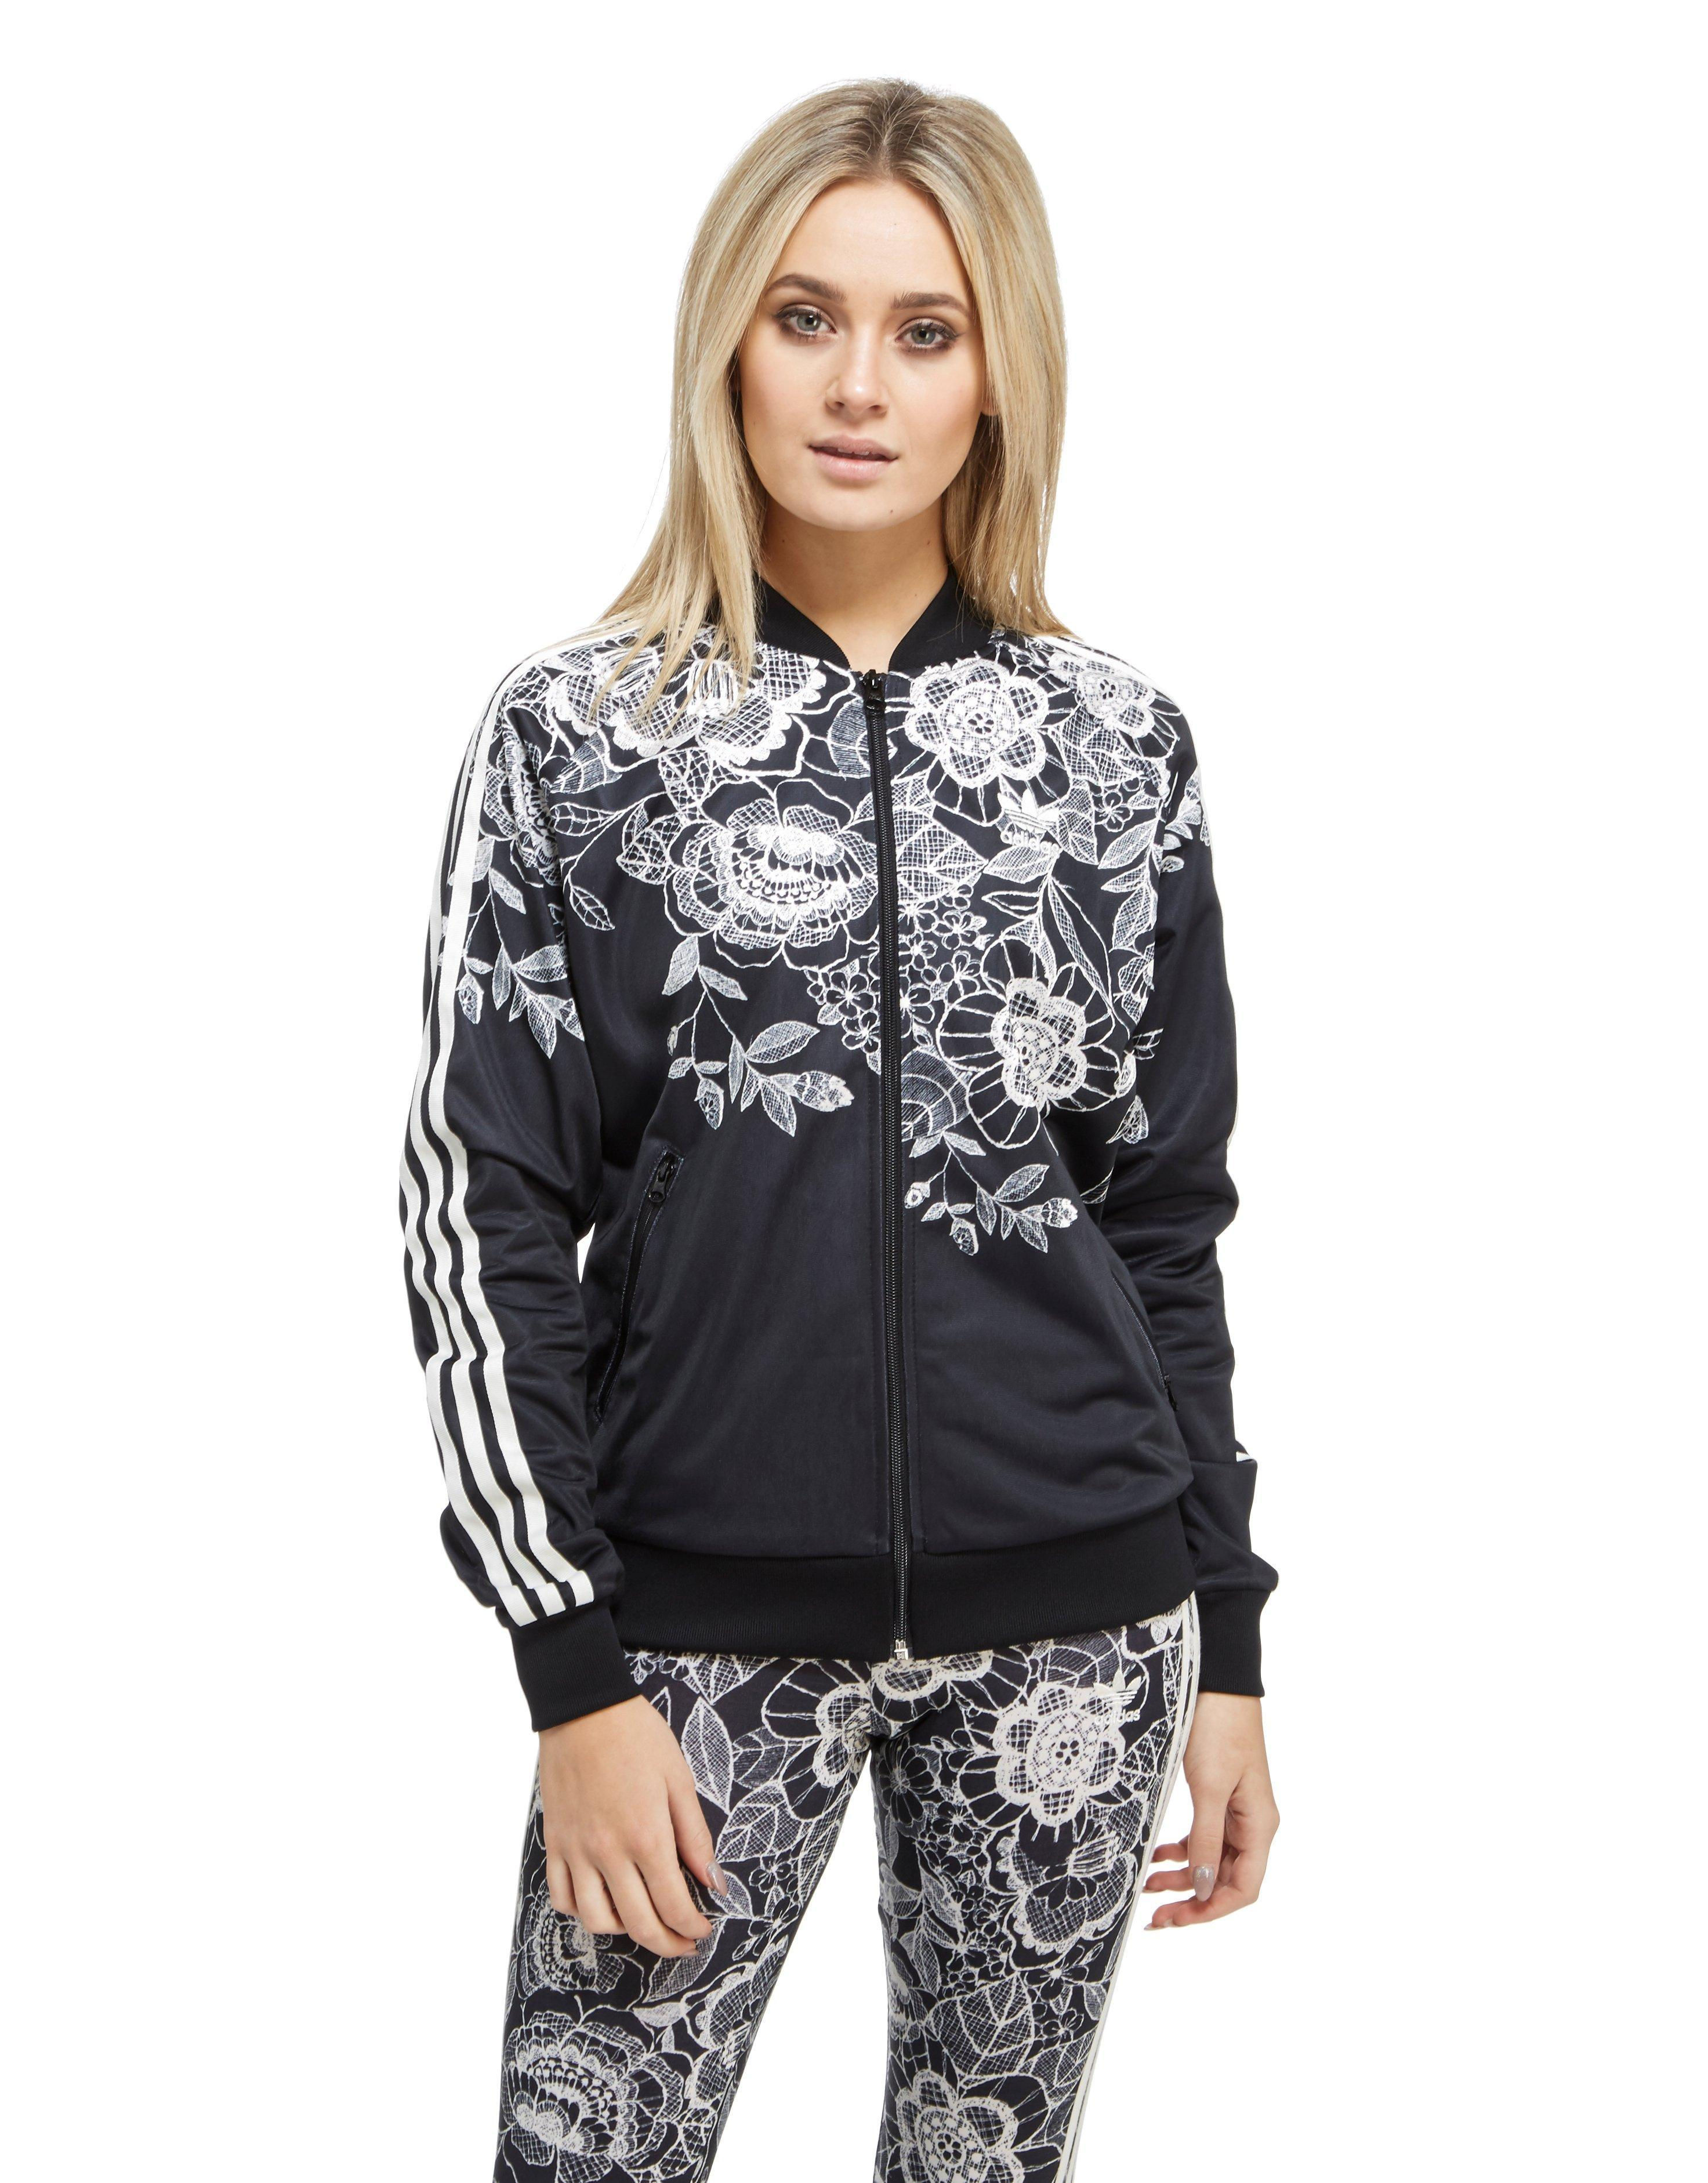 low priced 85f7f dcb11 adidas Originals Farm Florido Superstar Track Jacket in Black - Lyst